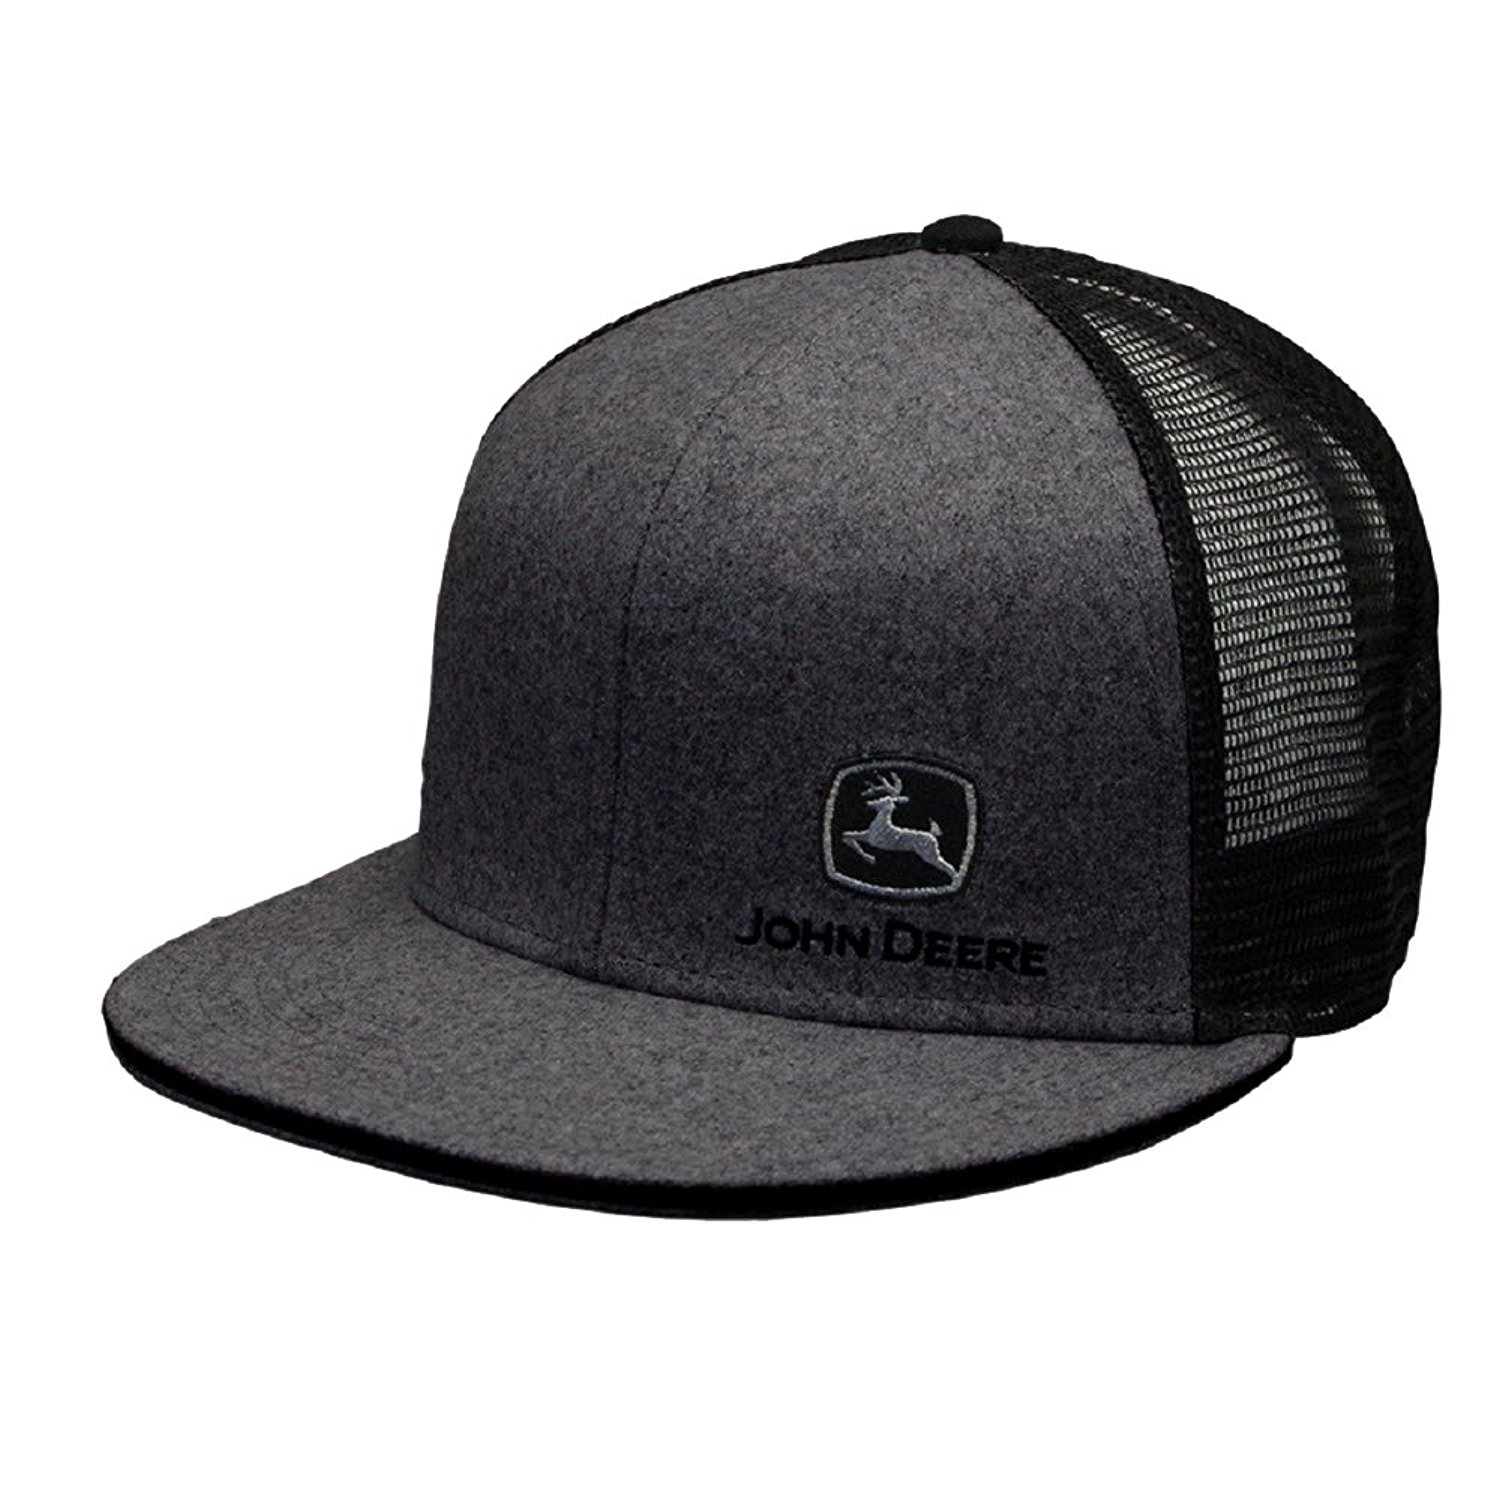 b7e36749 Get Quotations · John Deere Brand Charcoal High Profile w/Suiting Fabric  Snapback Hat - 13080463CH